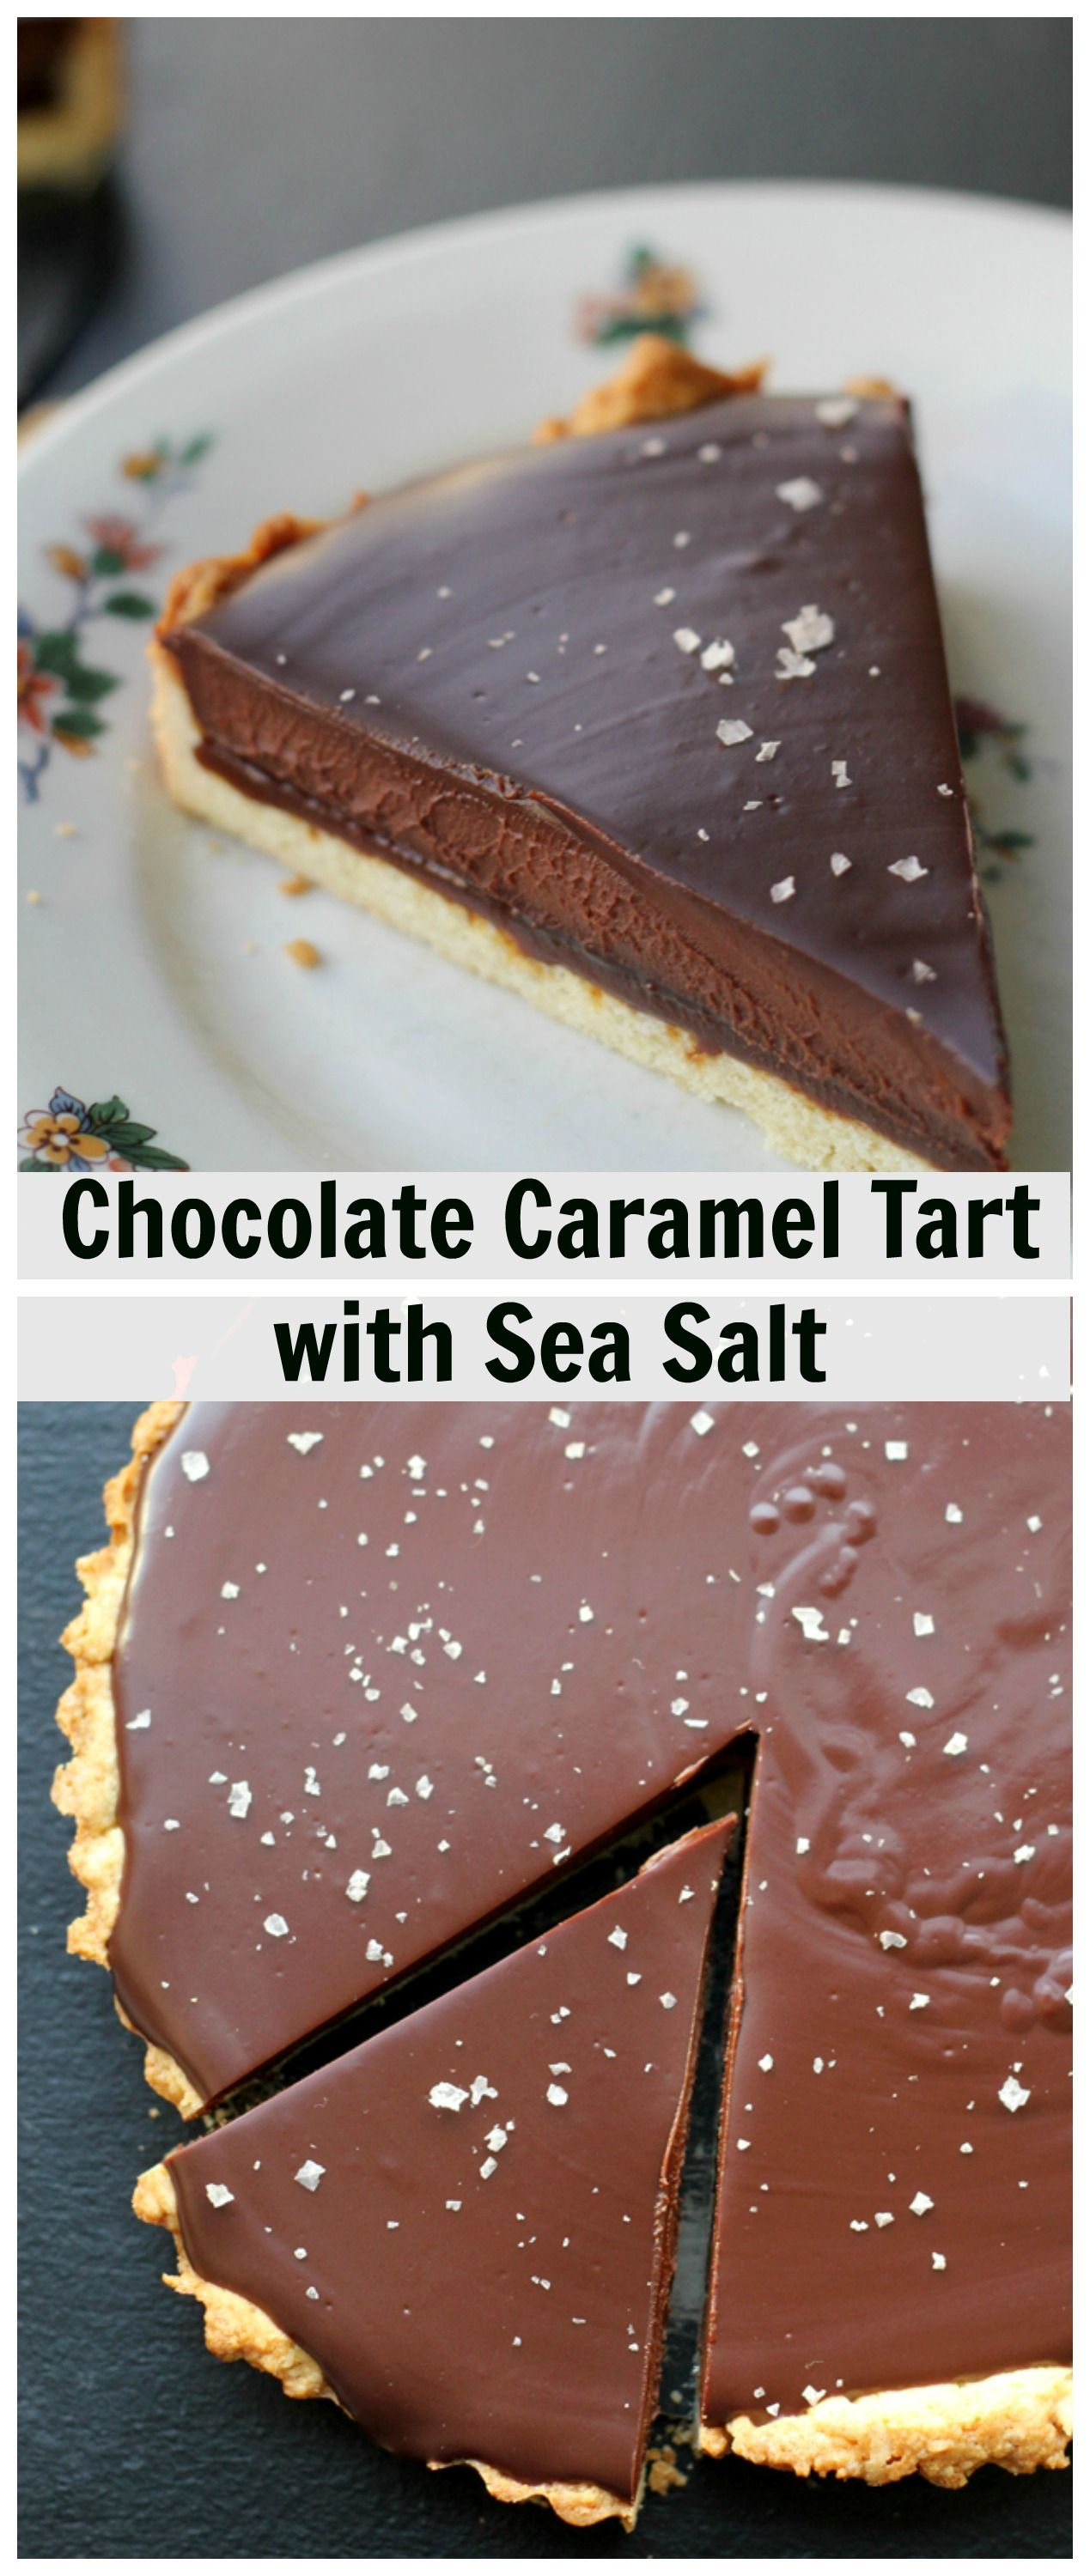 This elegant tart has a crisp cookie crust that is filled with a layer of salted caramel and topped with a thick decadent ganache.